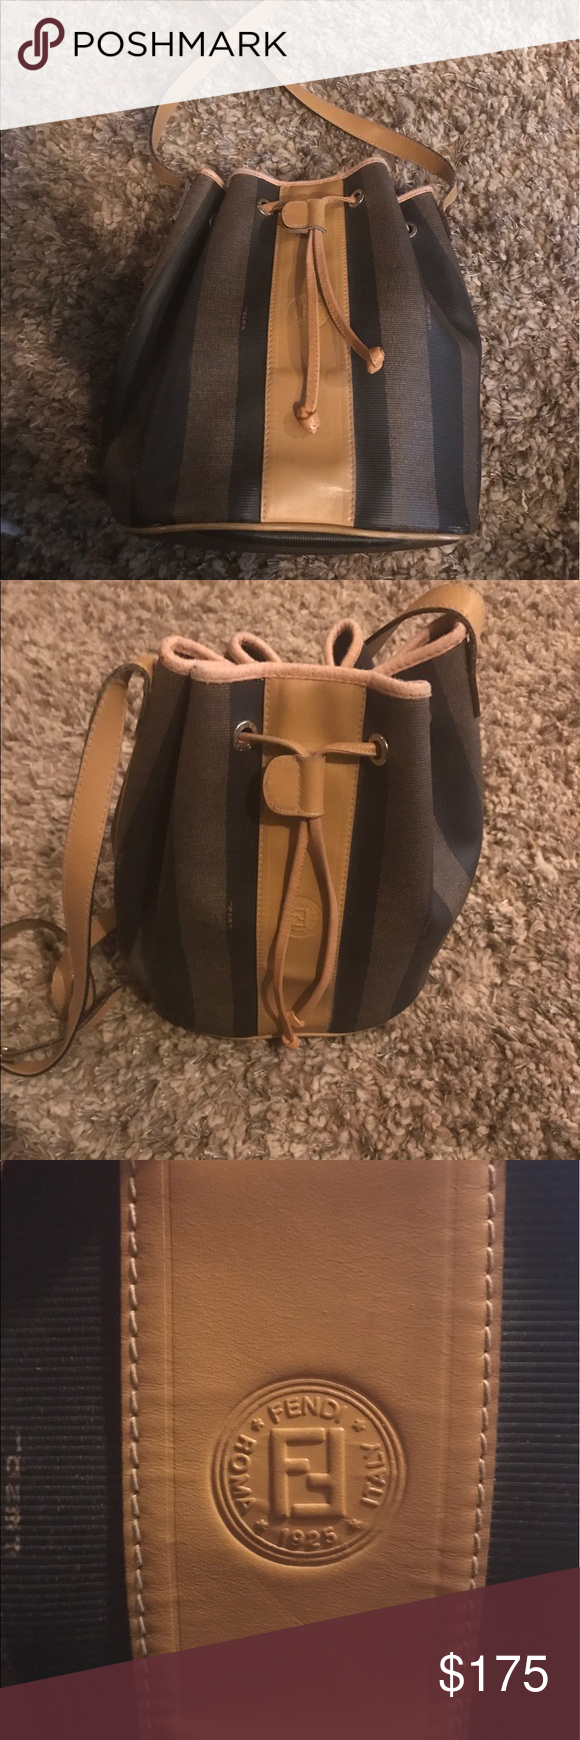 Fendi vintage handbag Vintage Fendi bucket bag with drawstring and strap in  good condition. There 247a001665